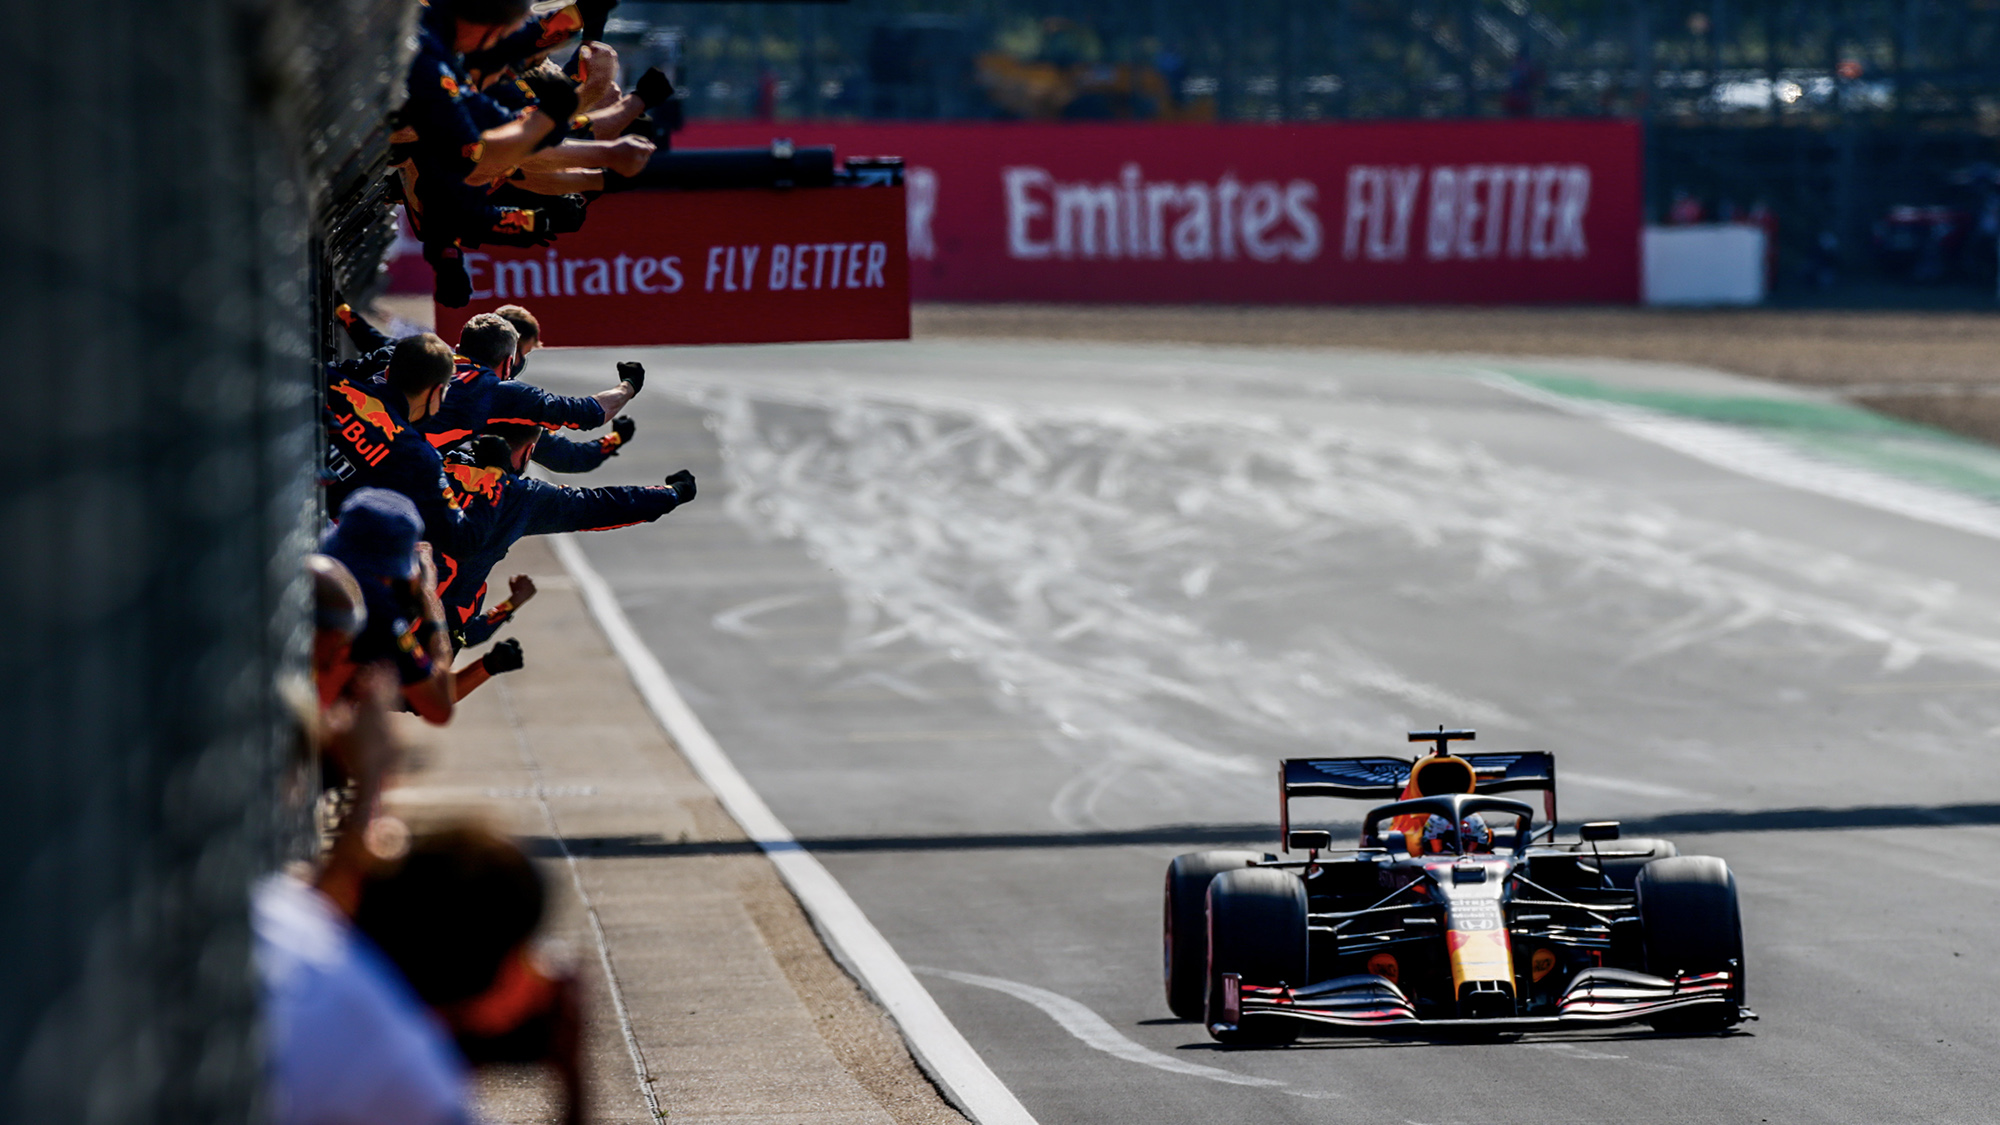 Max Verstappen crosses the finish line to win the 2020 F1 70th Anniversary Grand Prix at Silverstone